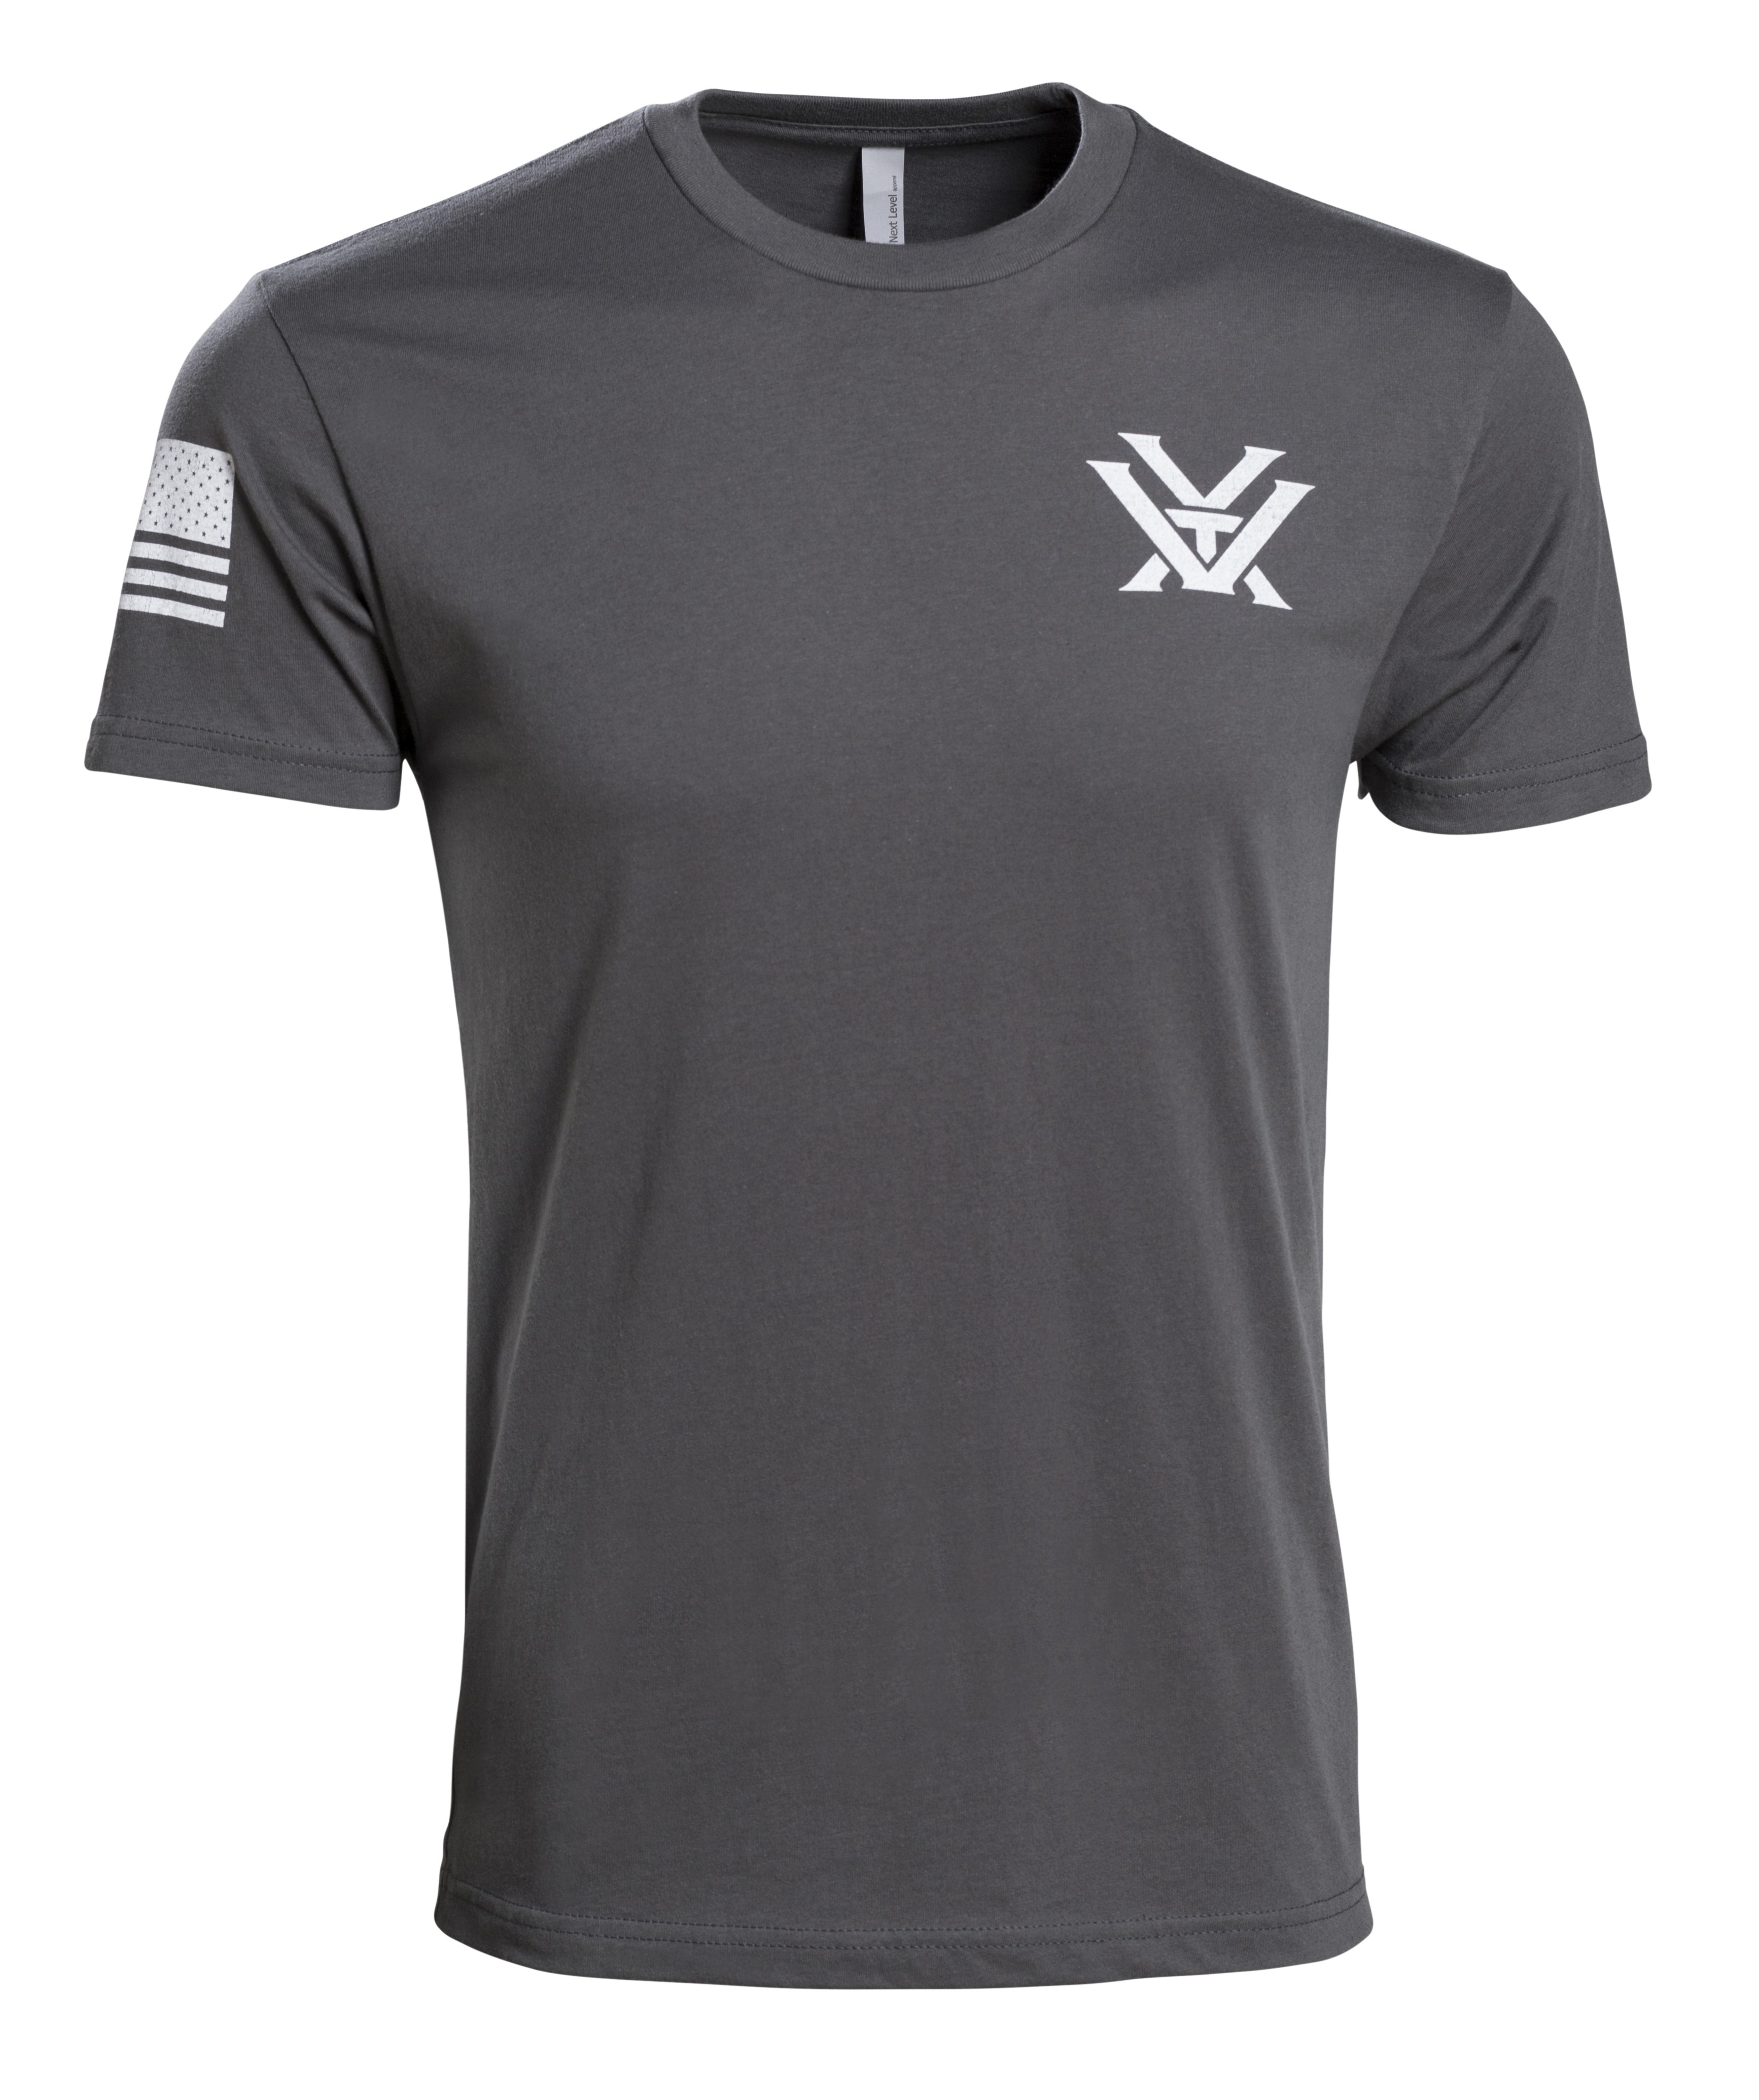 Vortex Grey Patriot T-Shirt